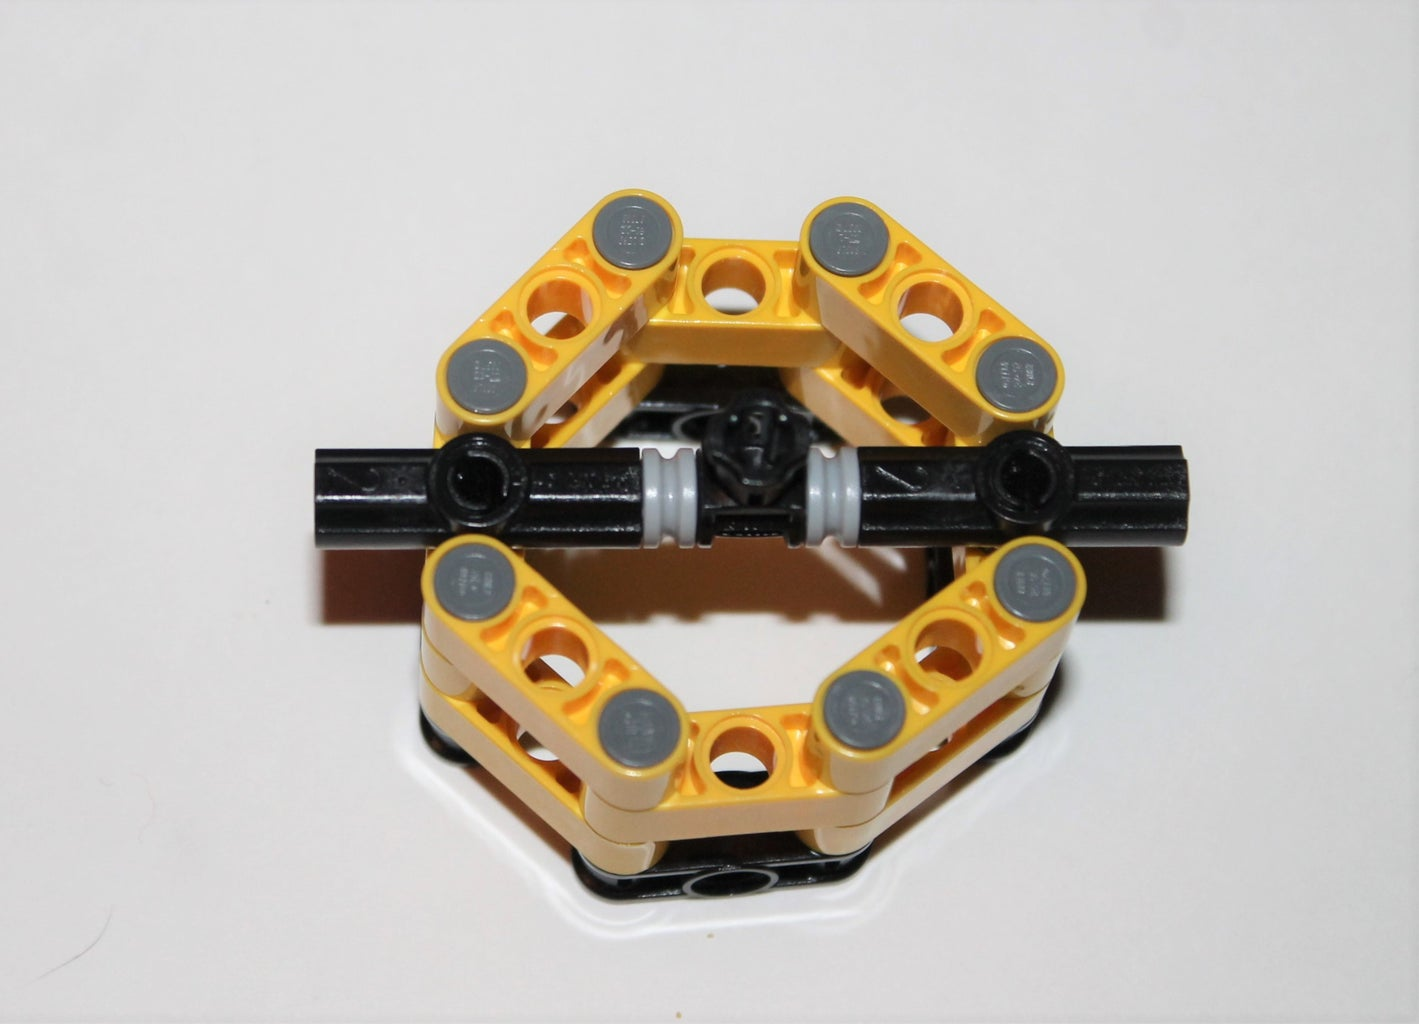 Attaching the Cross Connector